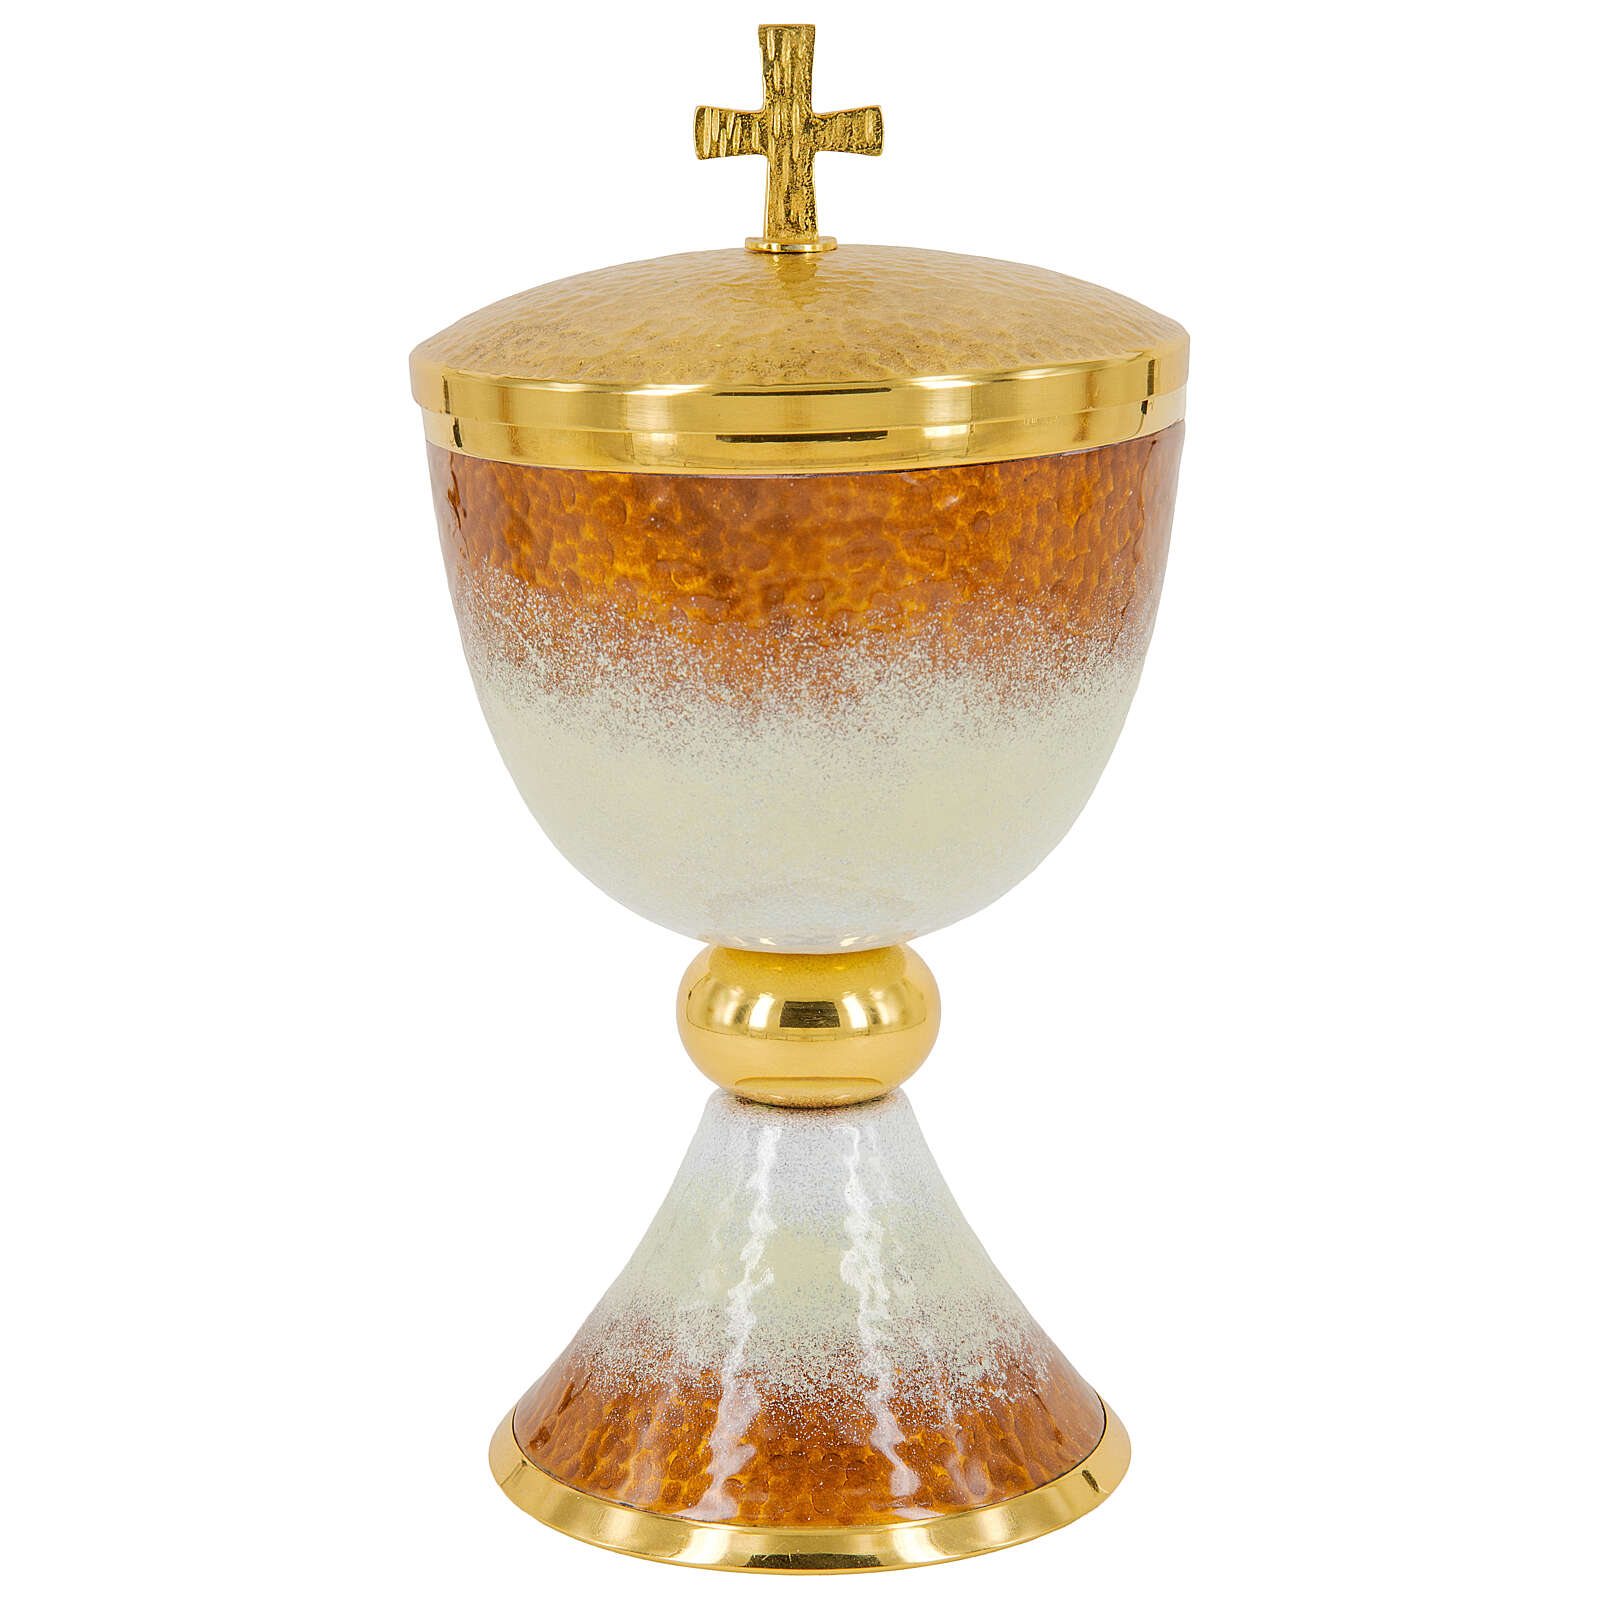 Gold plated brass chalice ciborium and paten with white and orange enamel 4